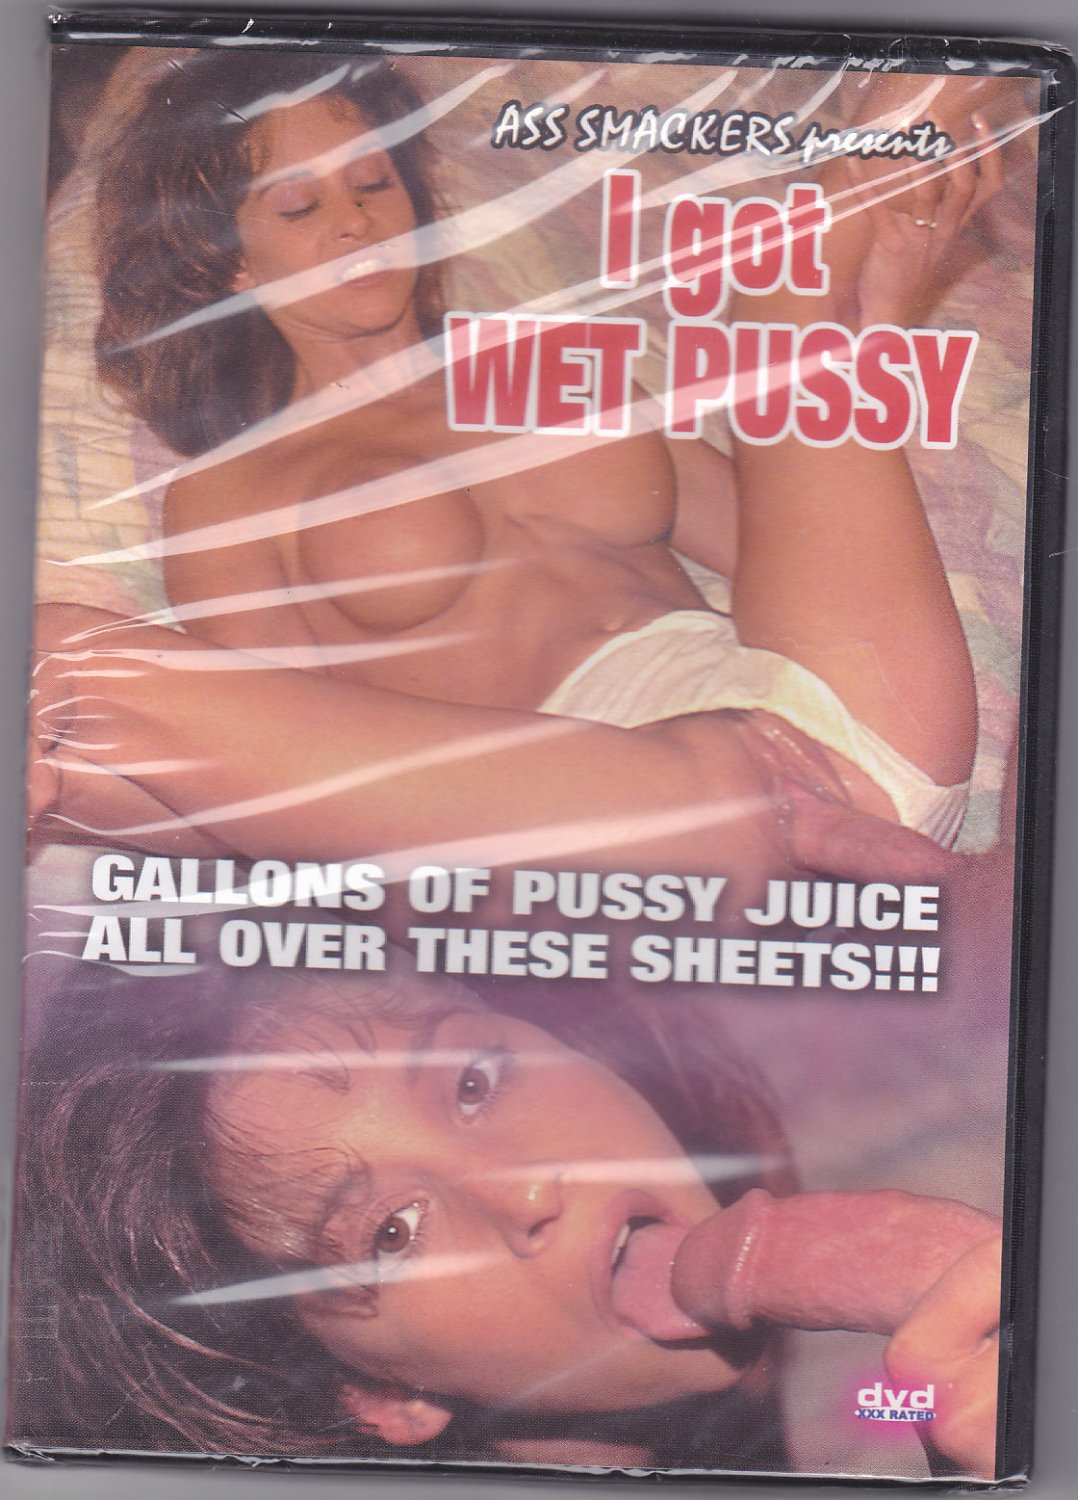 I Got Wet Pussy - Adult DVD - Factory Sealed